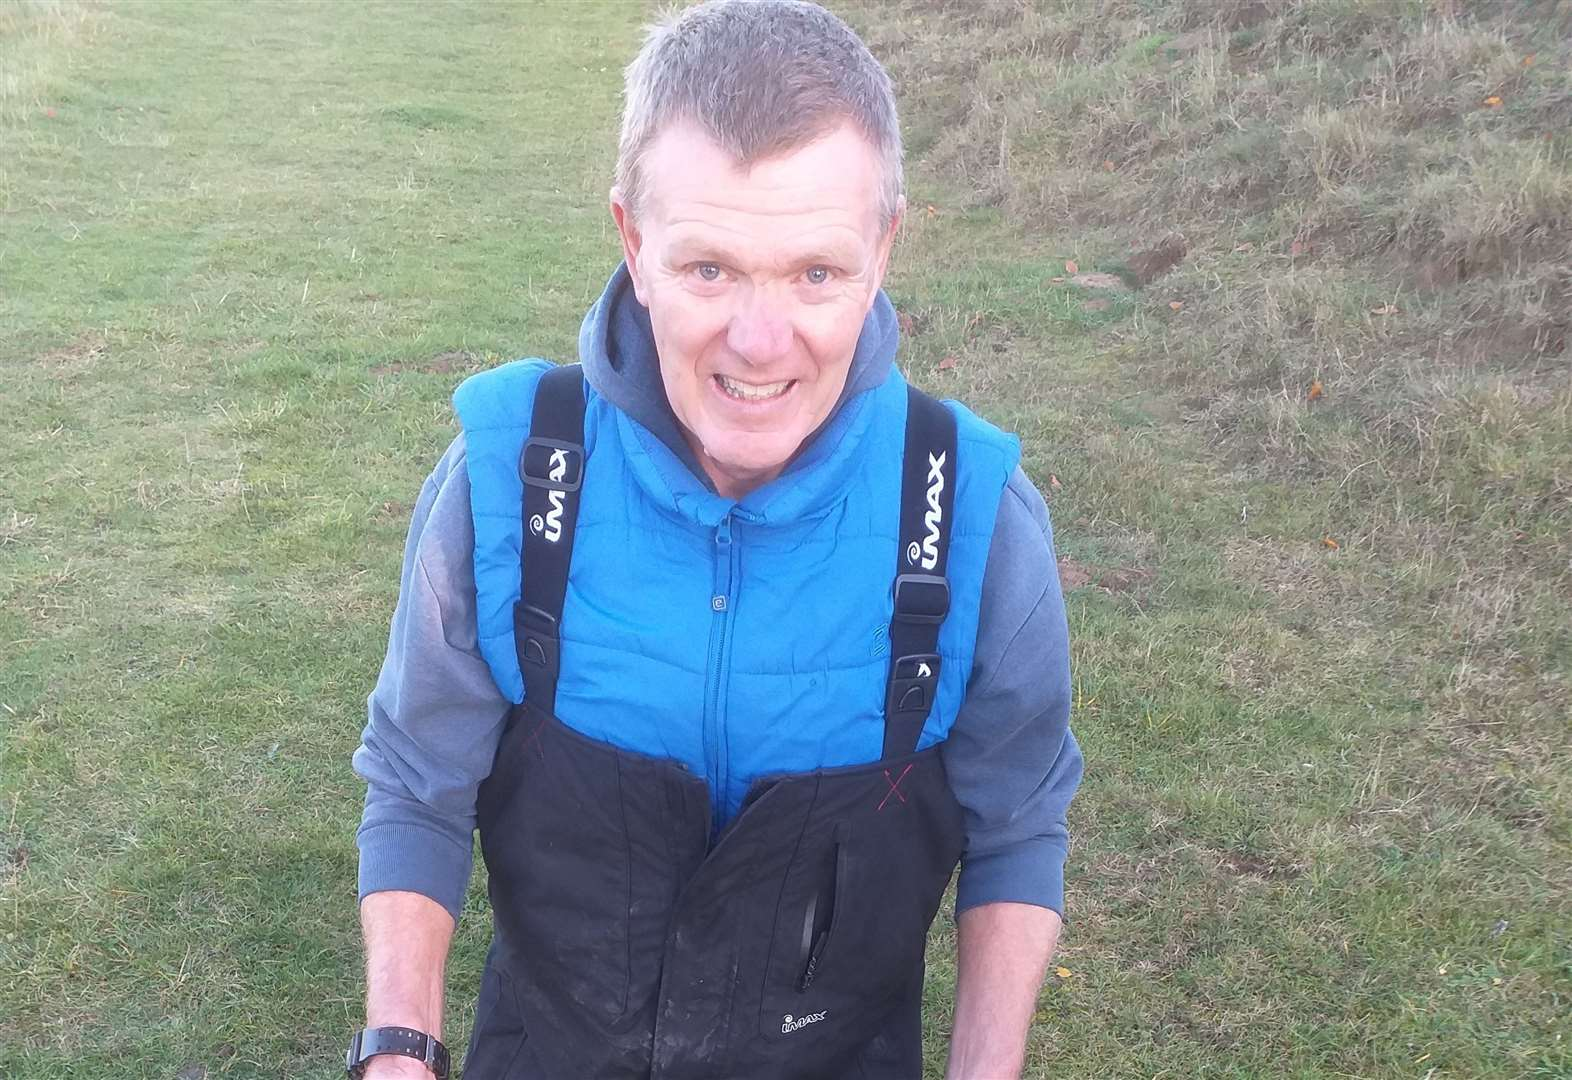 Angling: Steve wins from unfancied Tydd peg